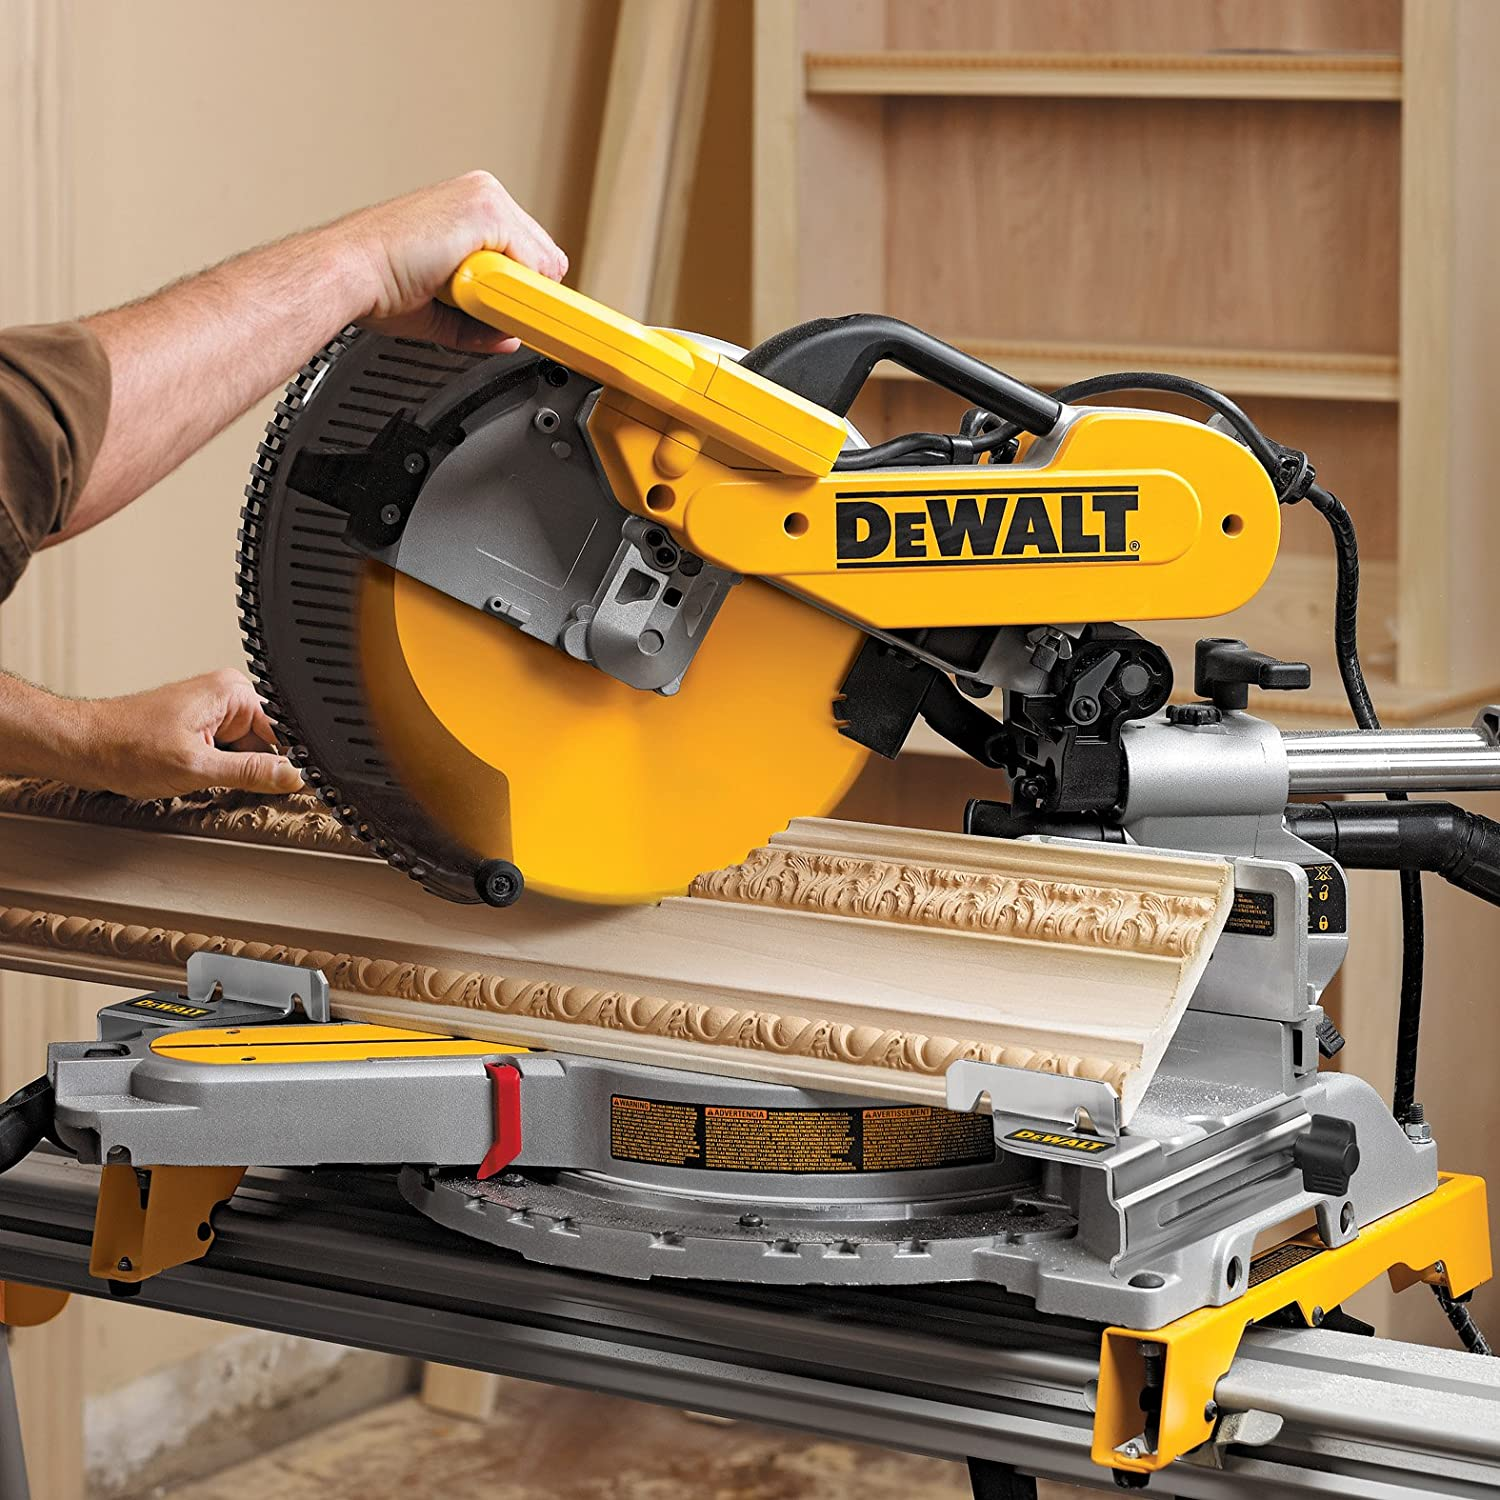 dewalt miter saw crown stop stops kit compound chop. Black Bedroom Furniture Sets. Home Design Ideas